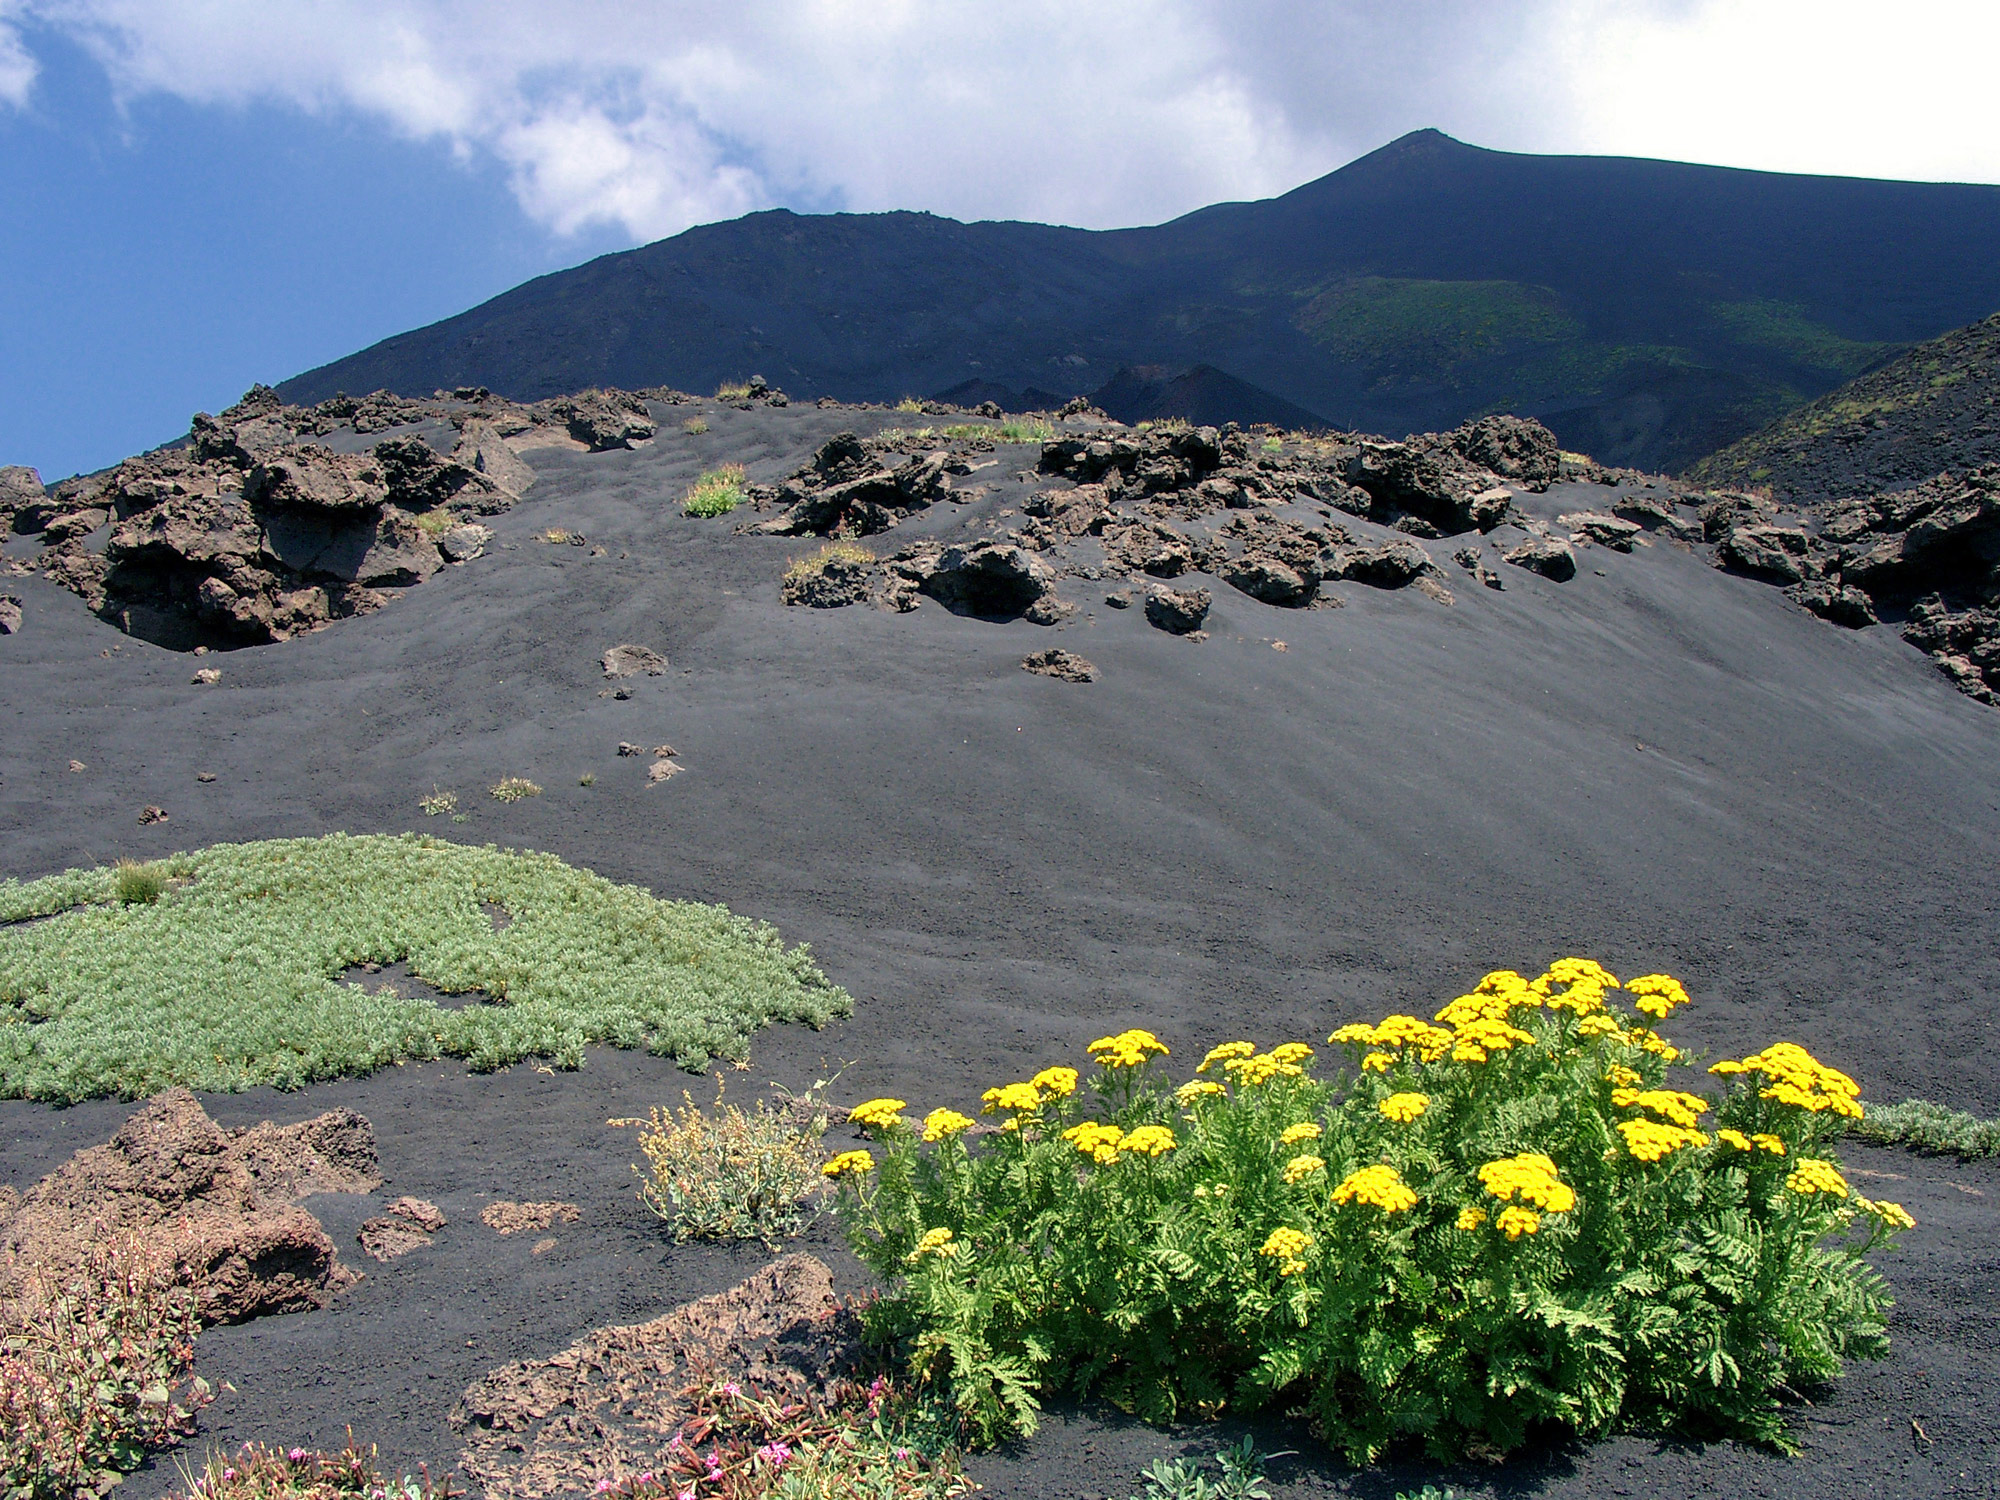 Vegetation Mount Etna